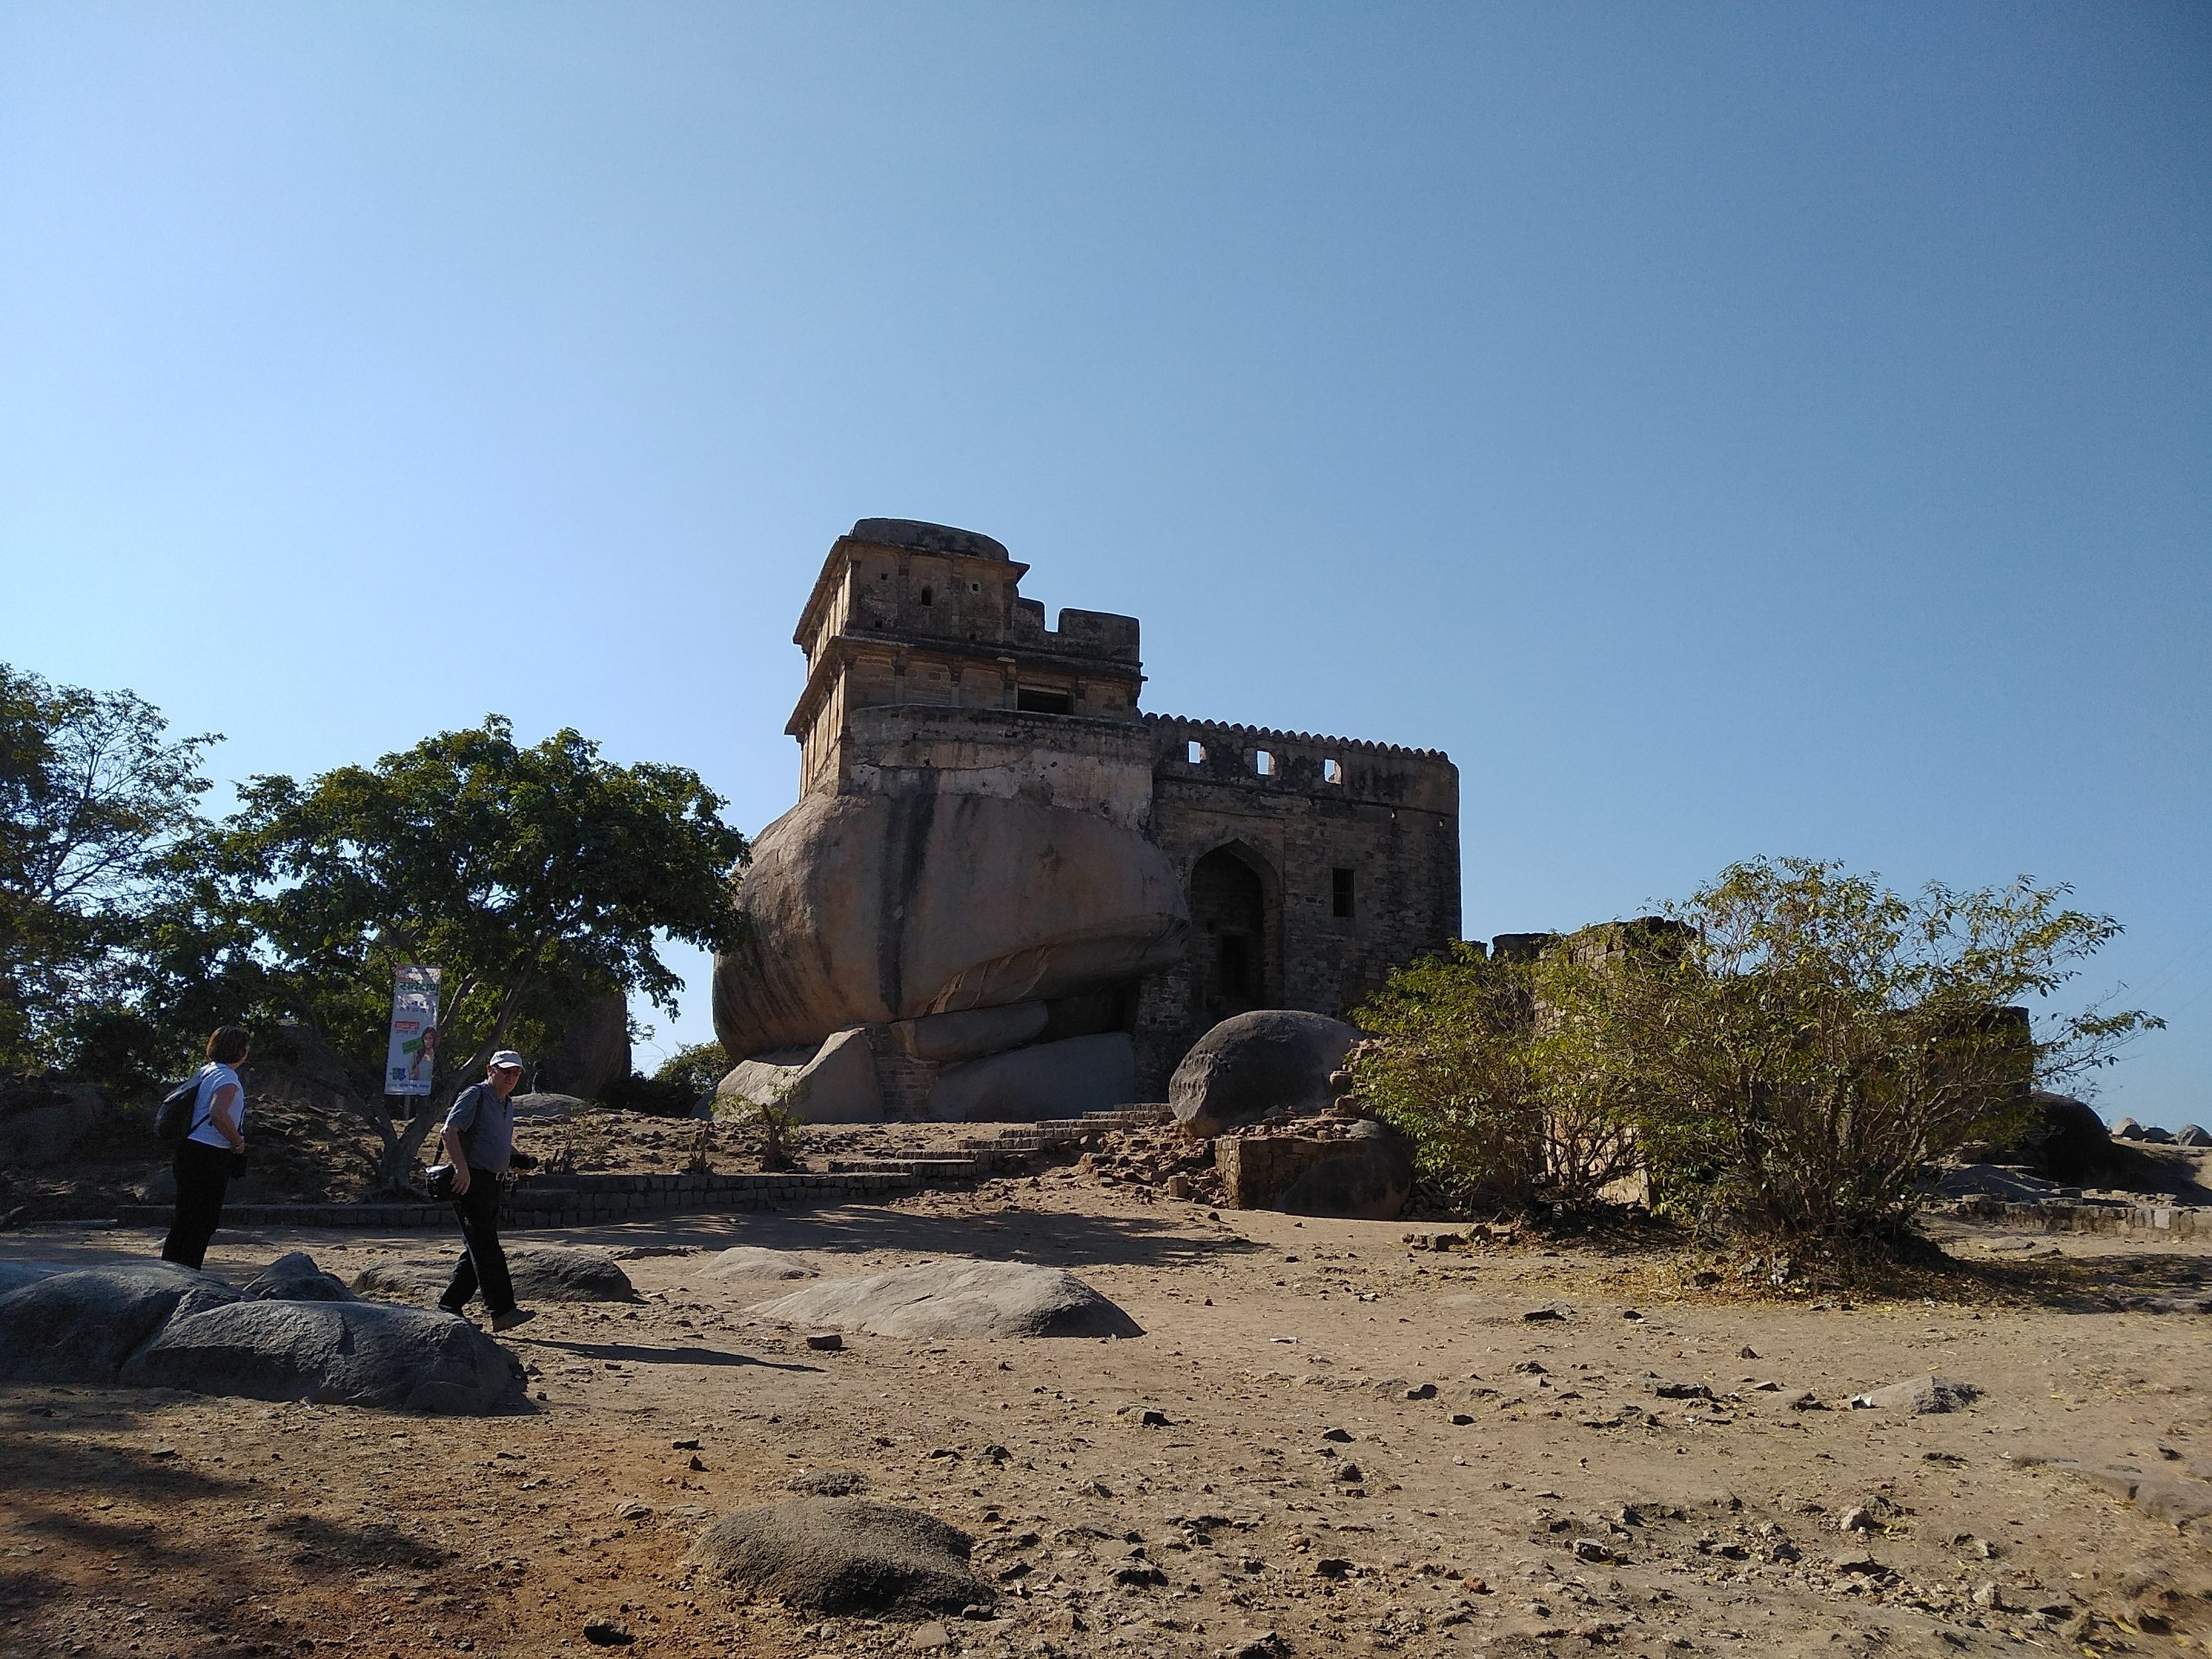 Top Place In Jabalpur For The Explorer In You- Madan Mahal Fort